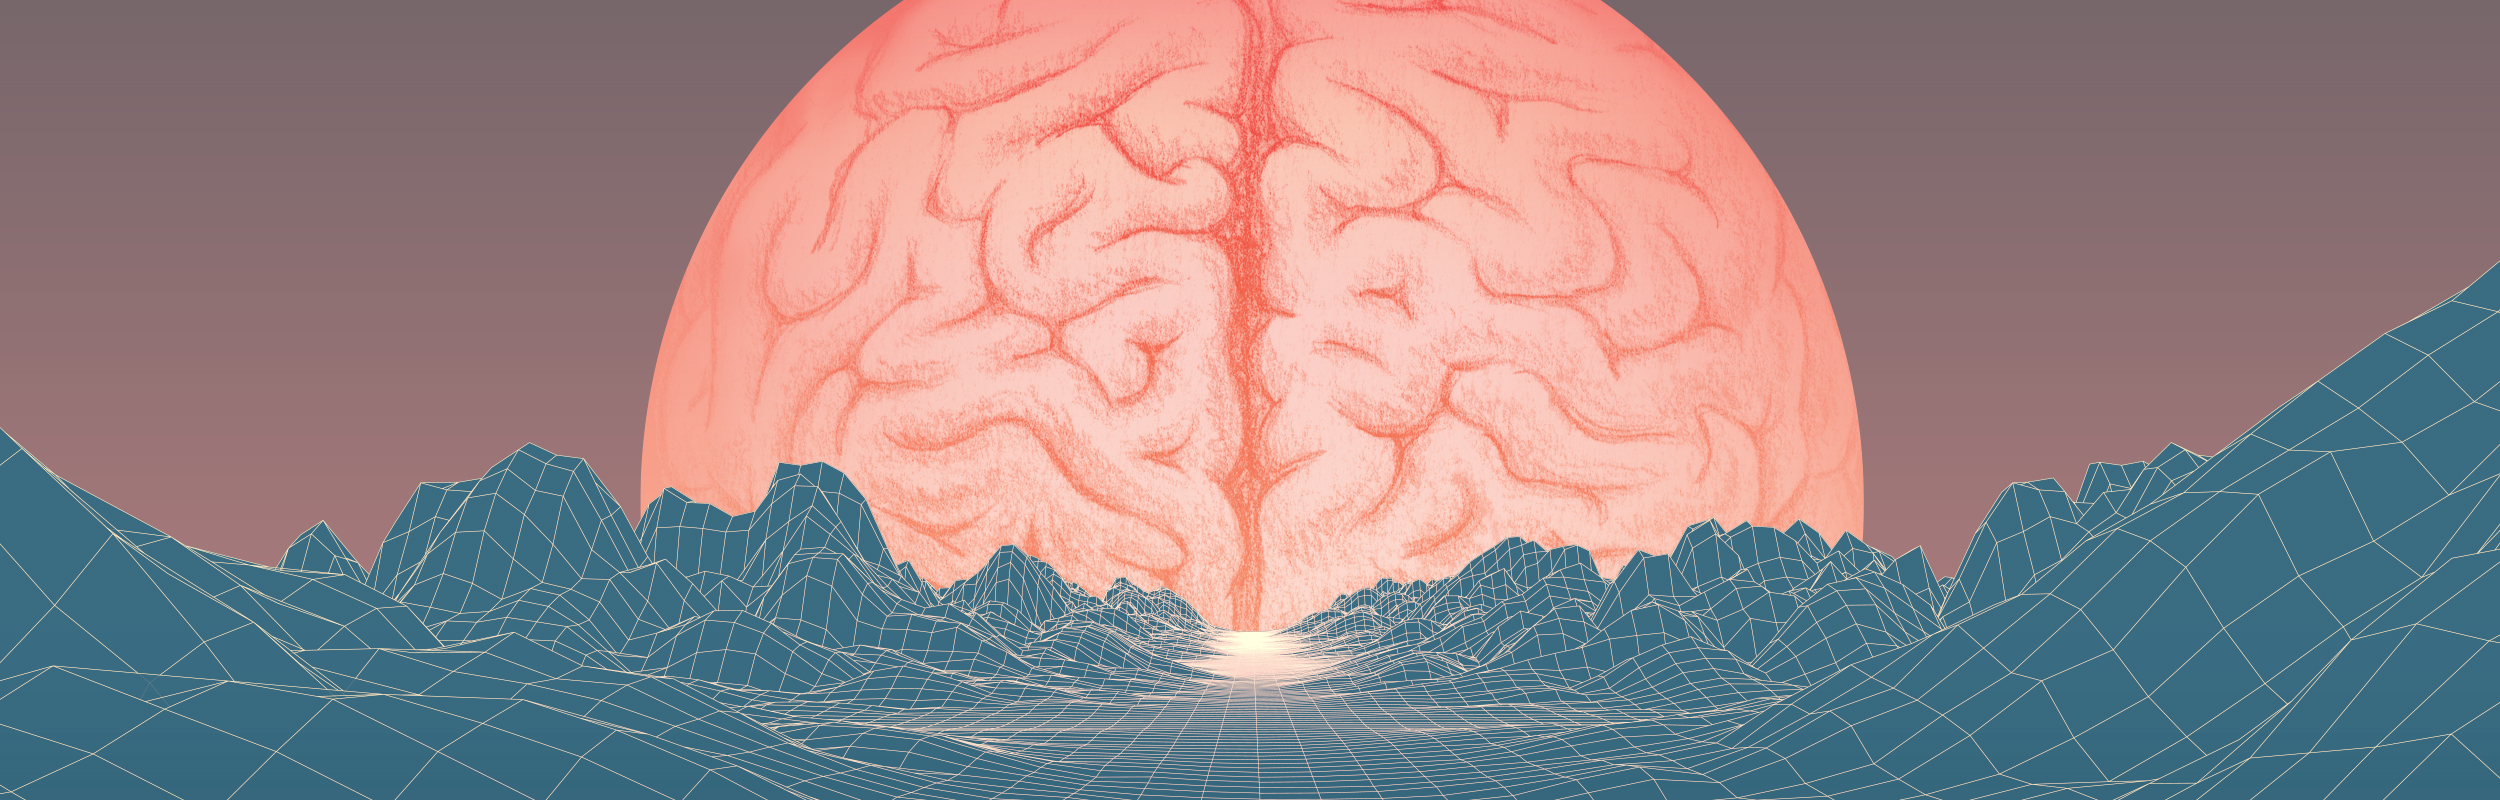 an artsy illustration of a brain overlooking a landscape brain